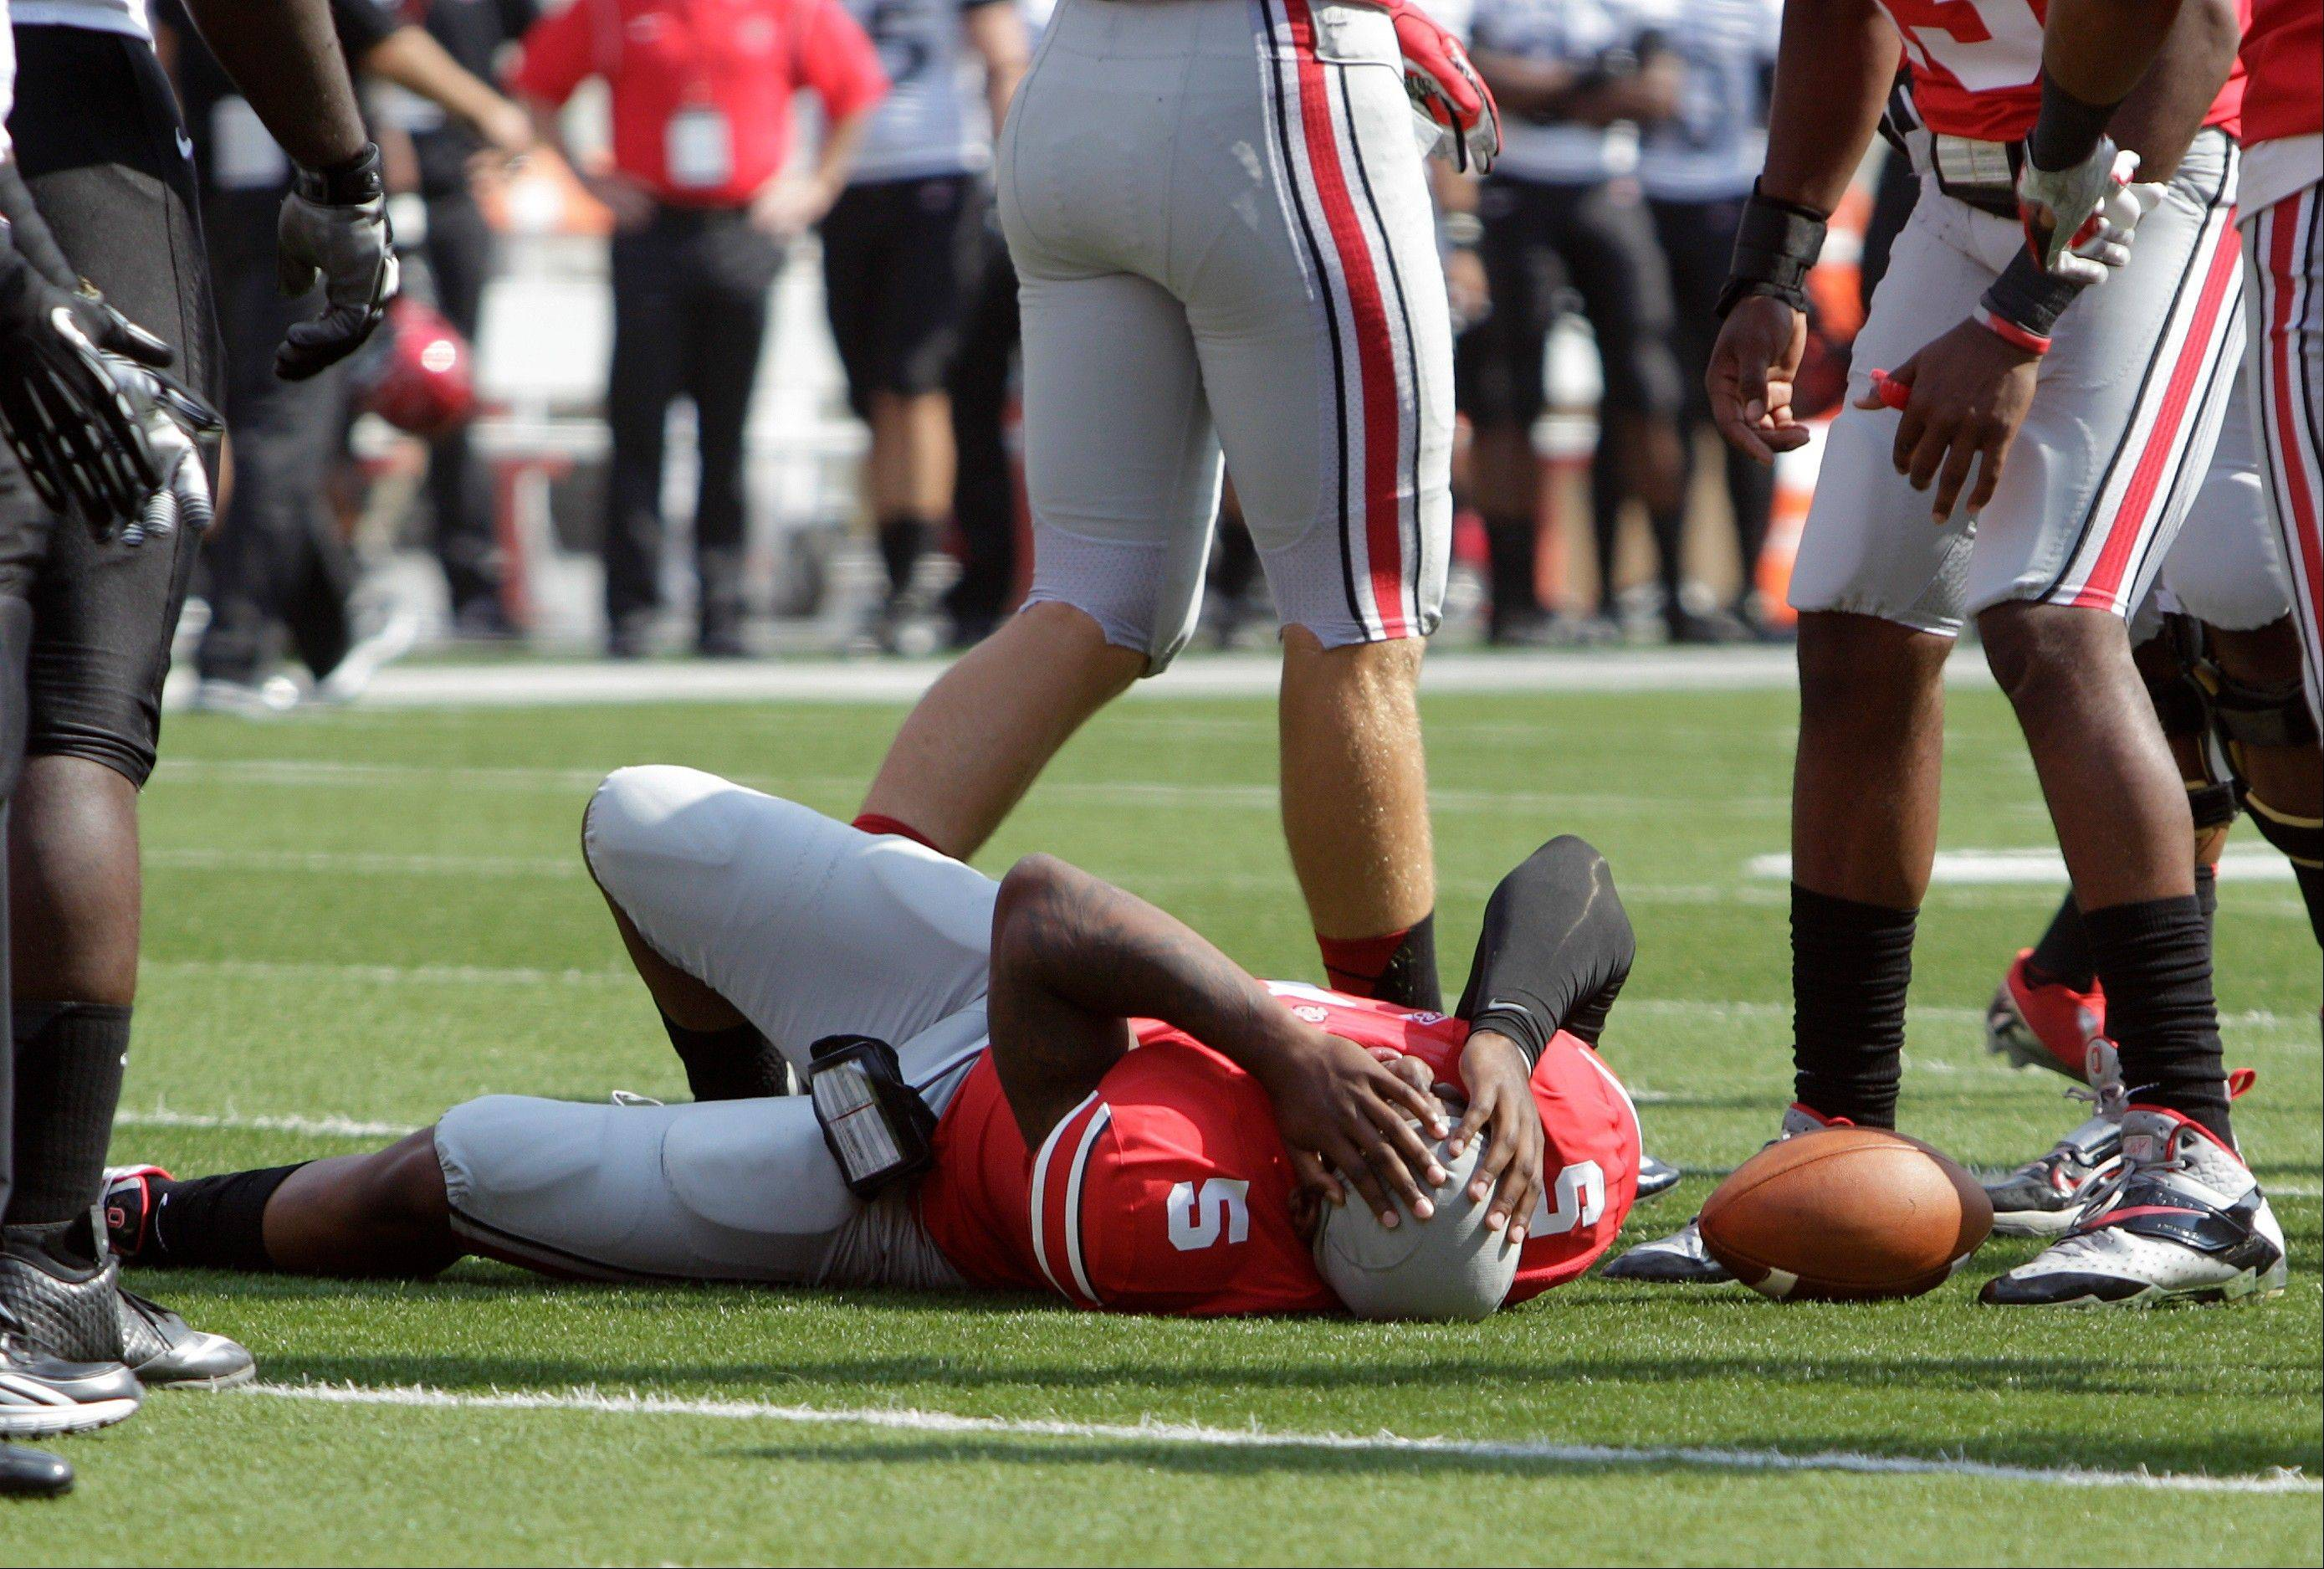 Starting quarterback Braxton Miller lies on the ground after being injured during the first quarter of Ohio State's game against San Diego State on Saturday in Columbus, Ohio.